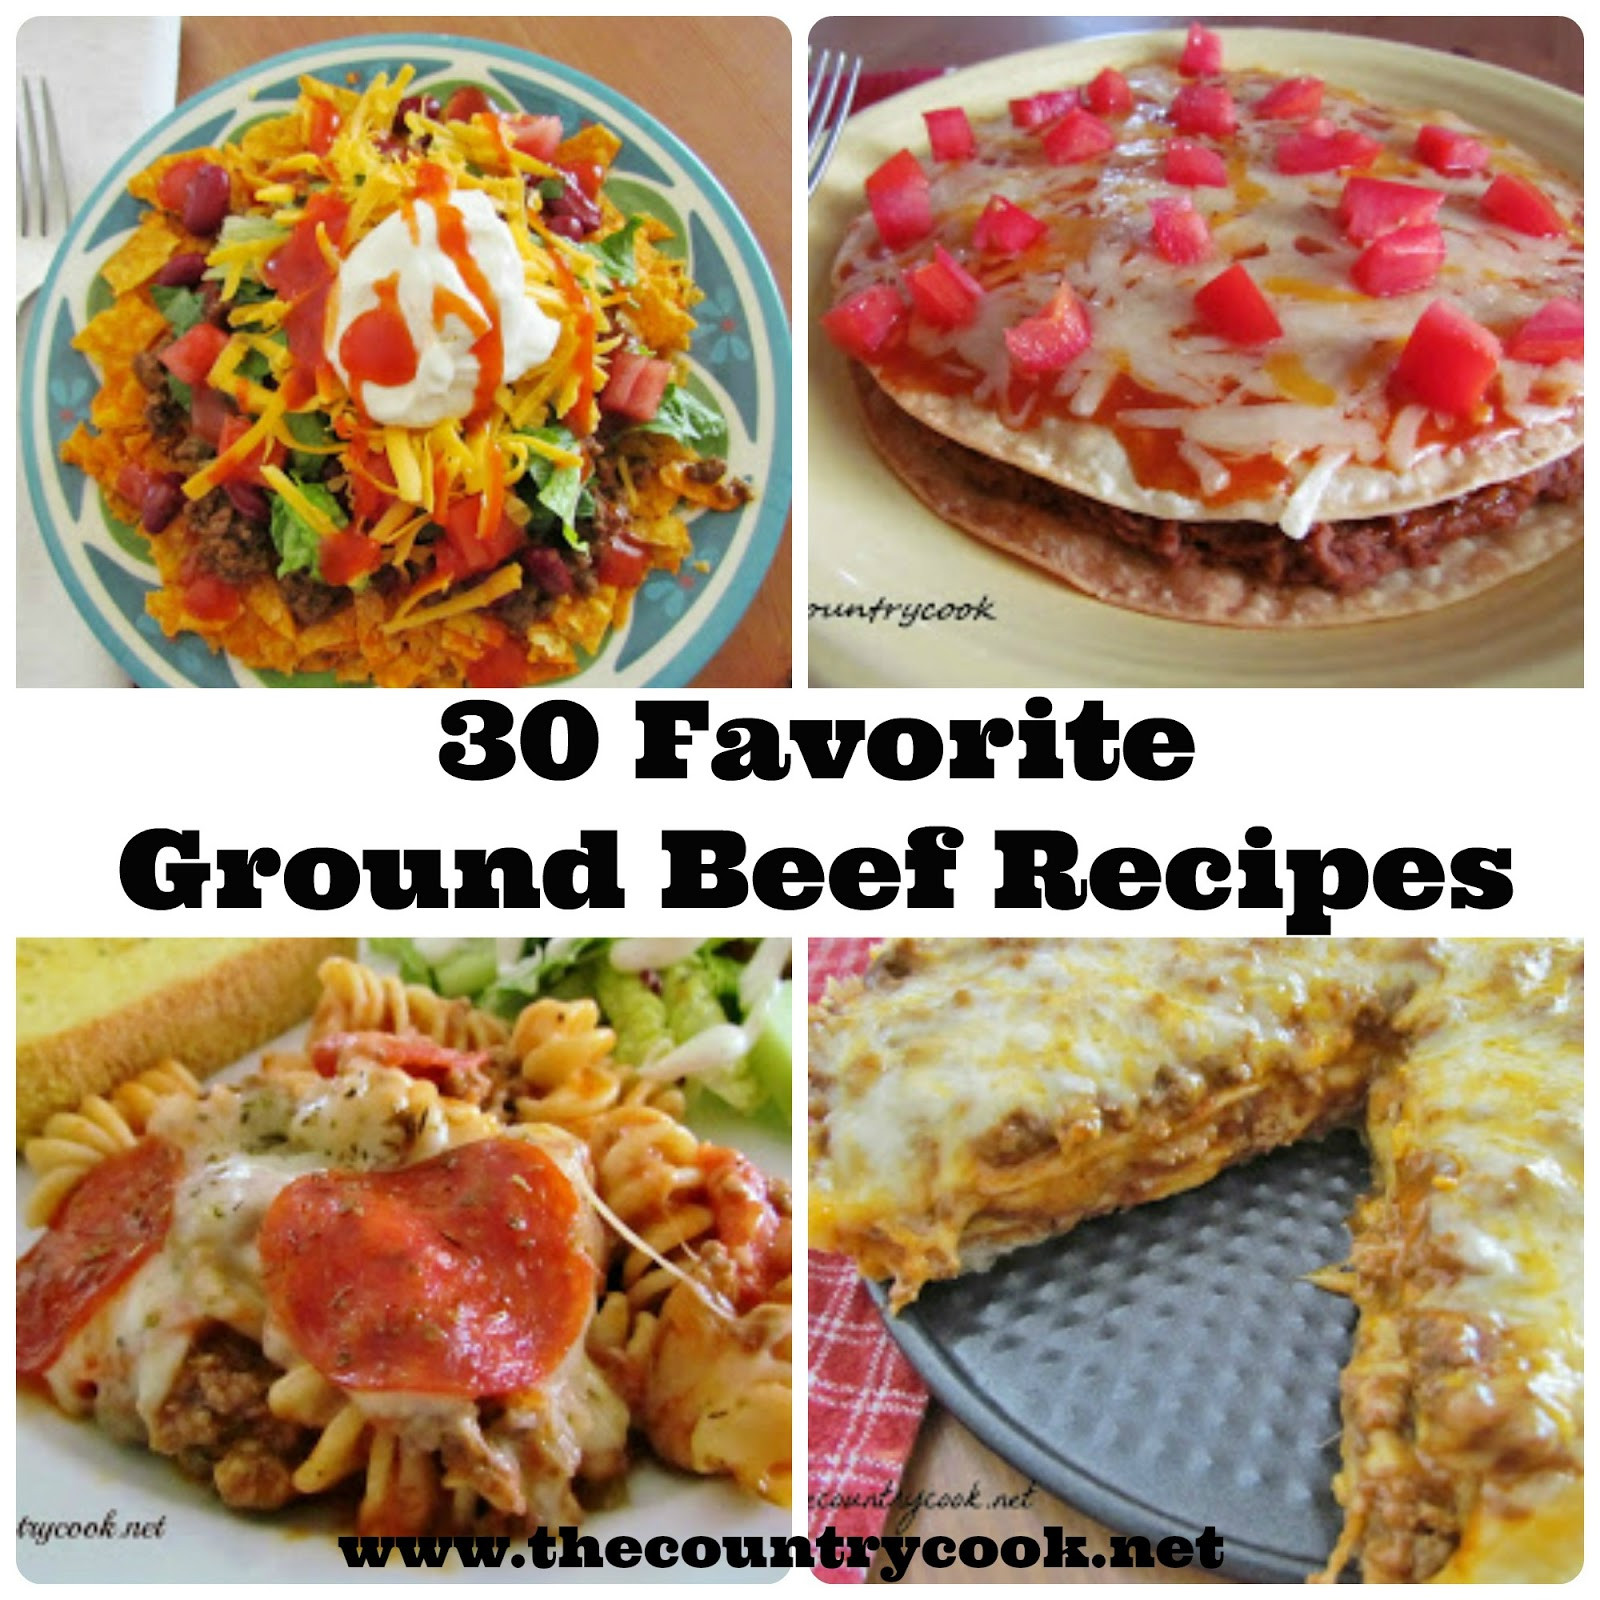 Ground Beef Ideas  30 Favorite Ground Beef Recipes The Country Cook